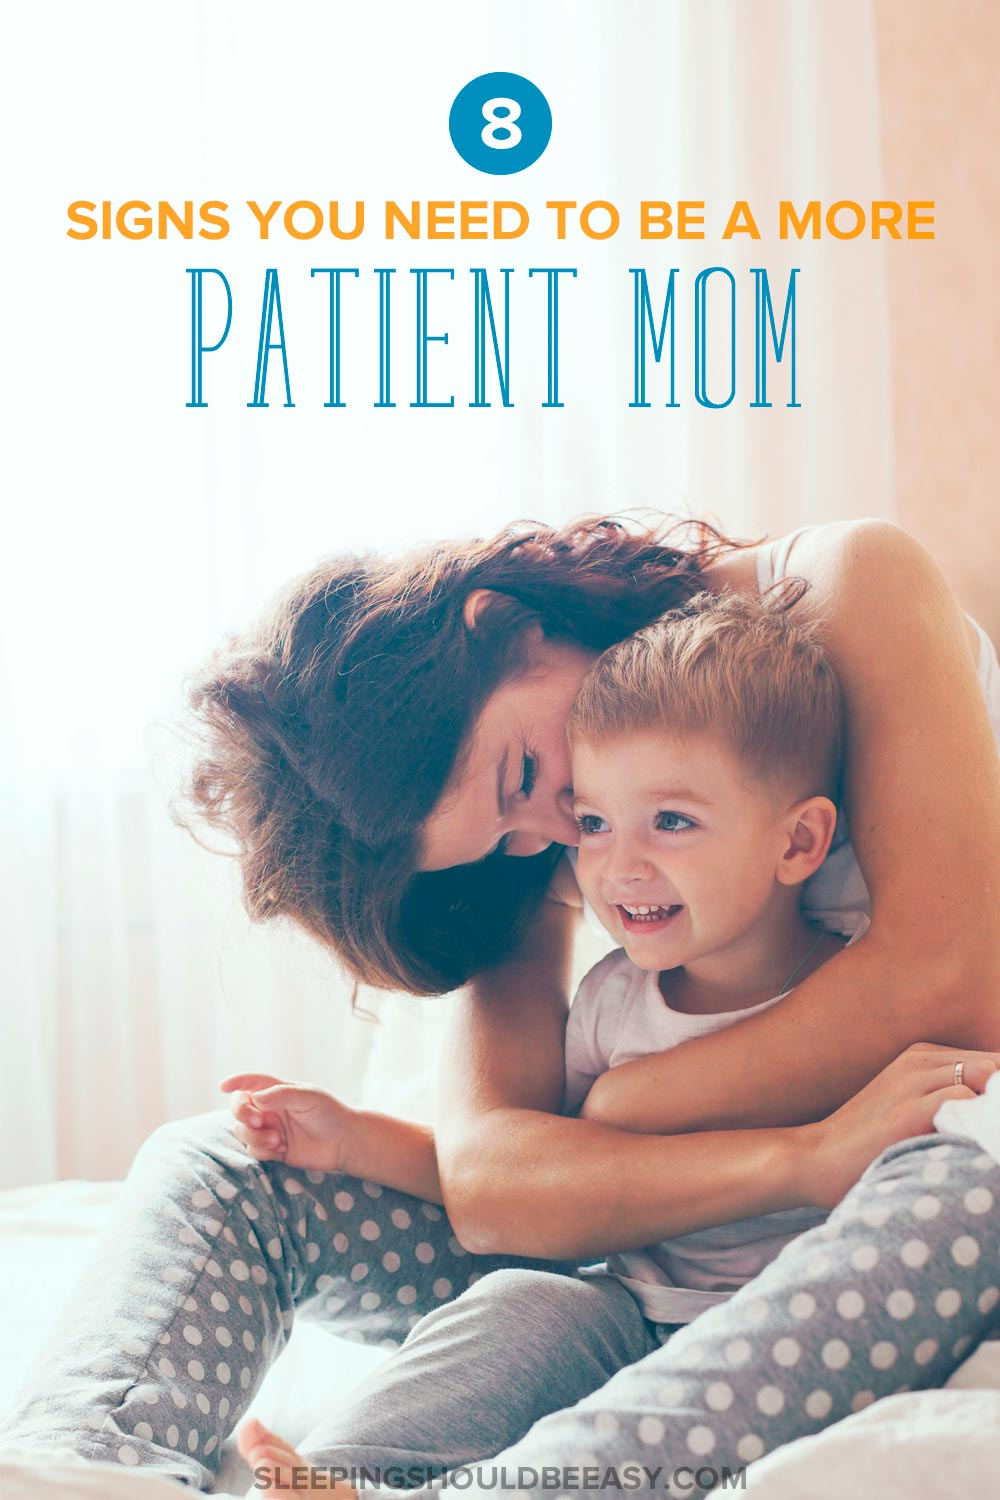 Parenthood takes a toll on any parent. Learn the 8 warning signs you need to be a patient mom (and what to do to fix it).